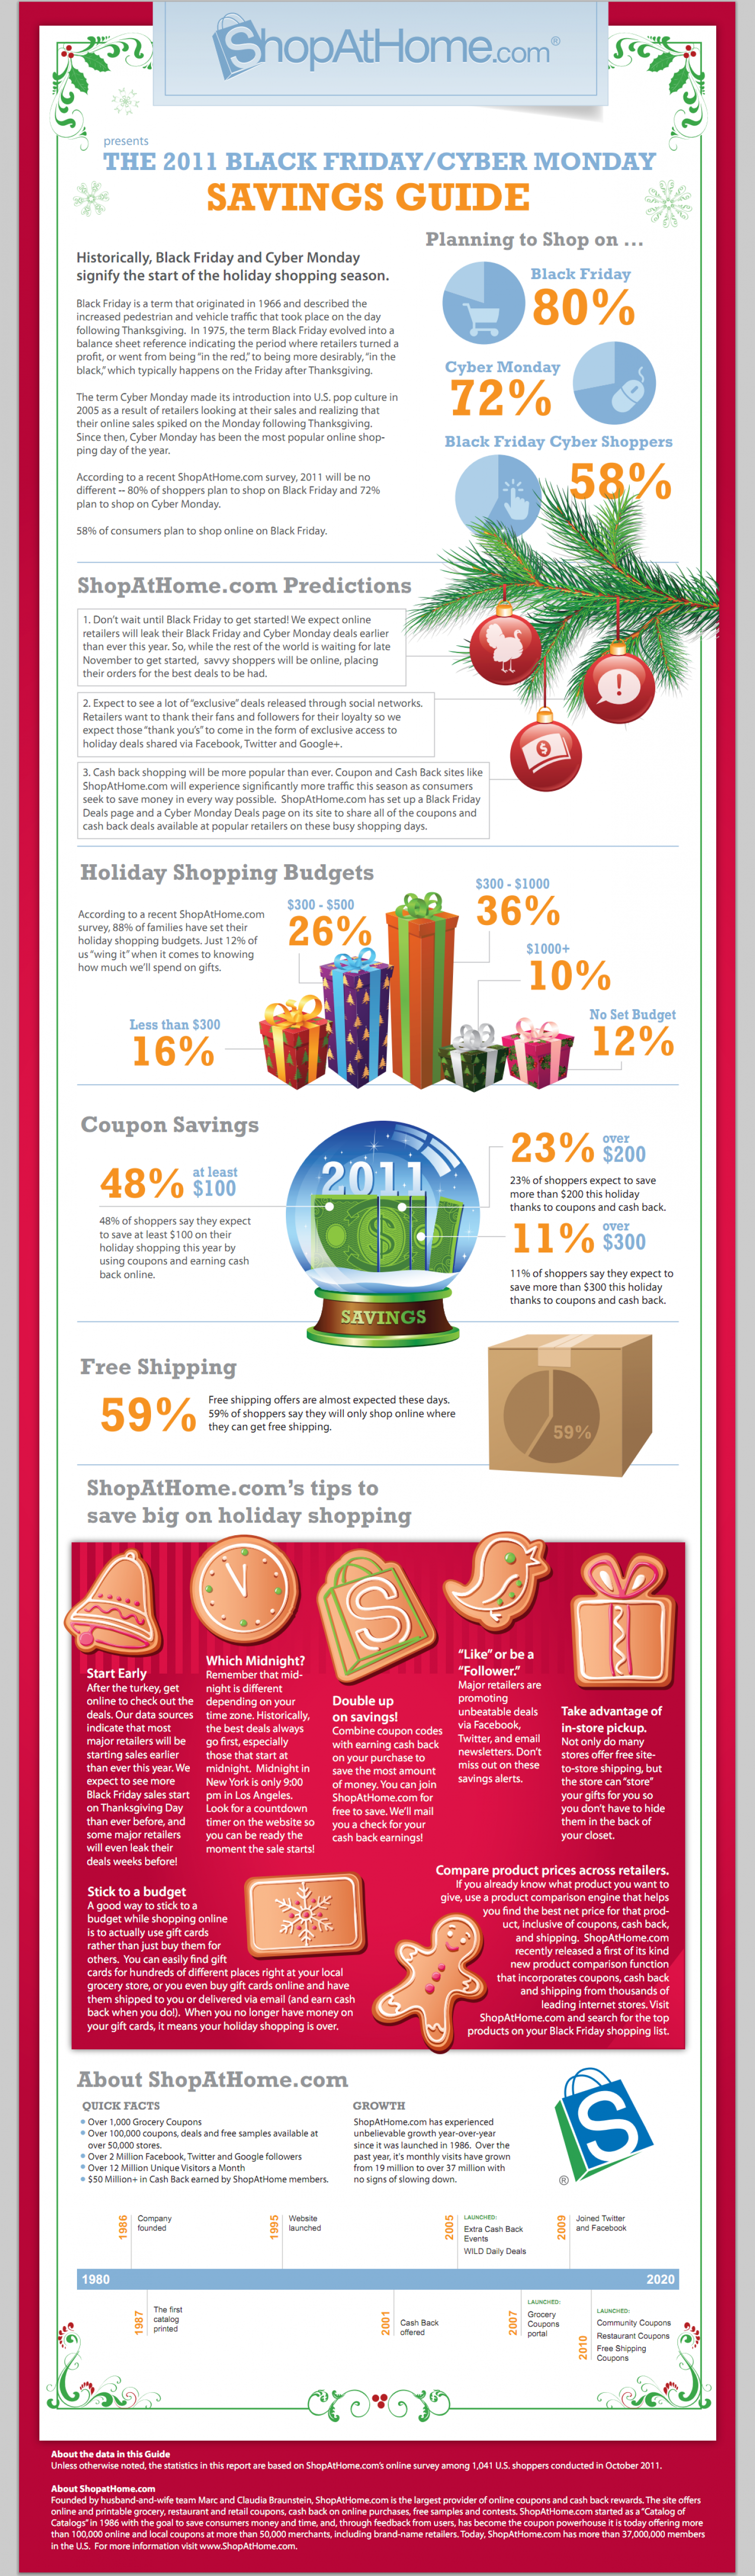 The 2011 Black Friday/Cyber Monday Savings Guide Infographic